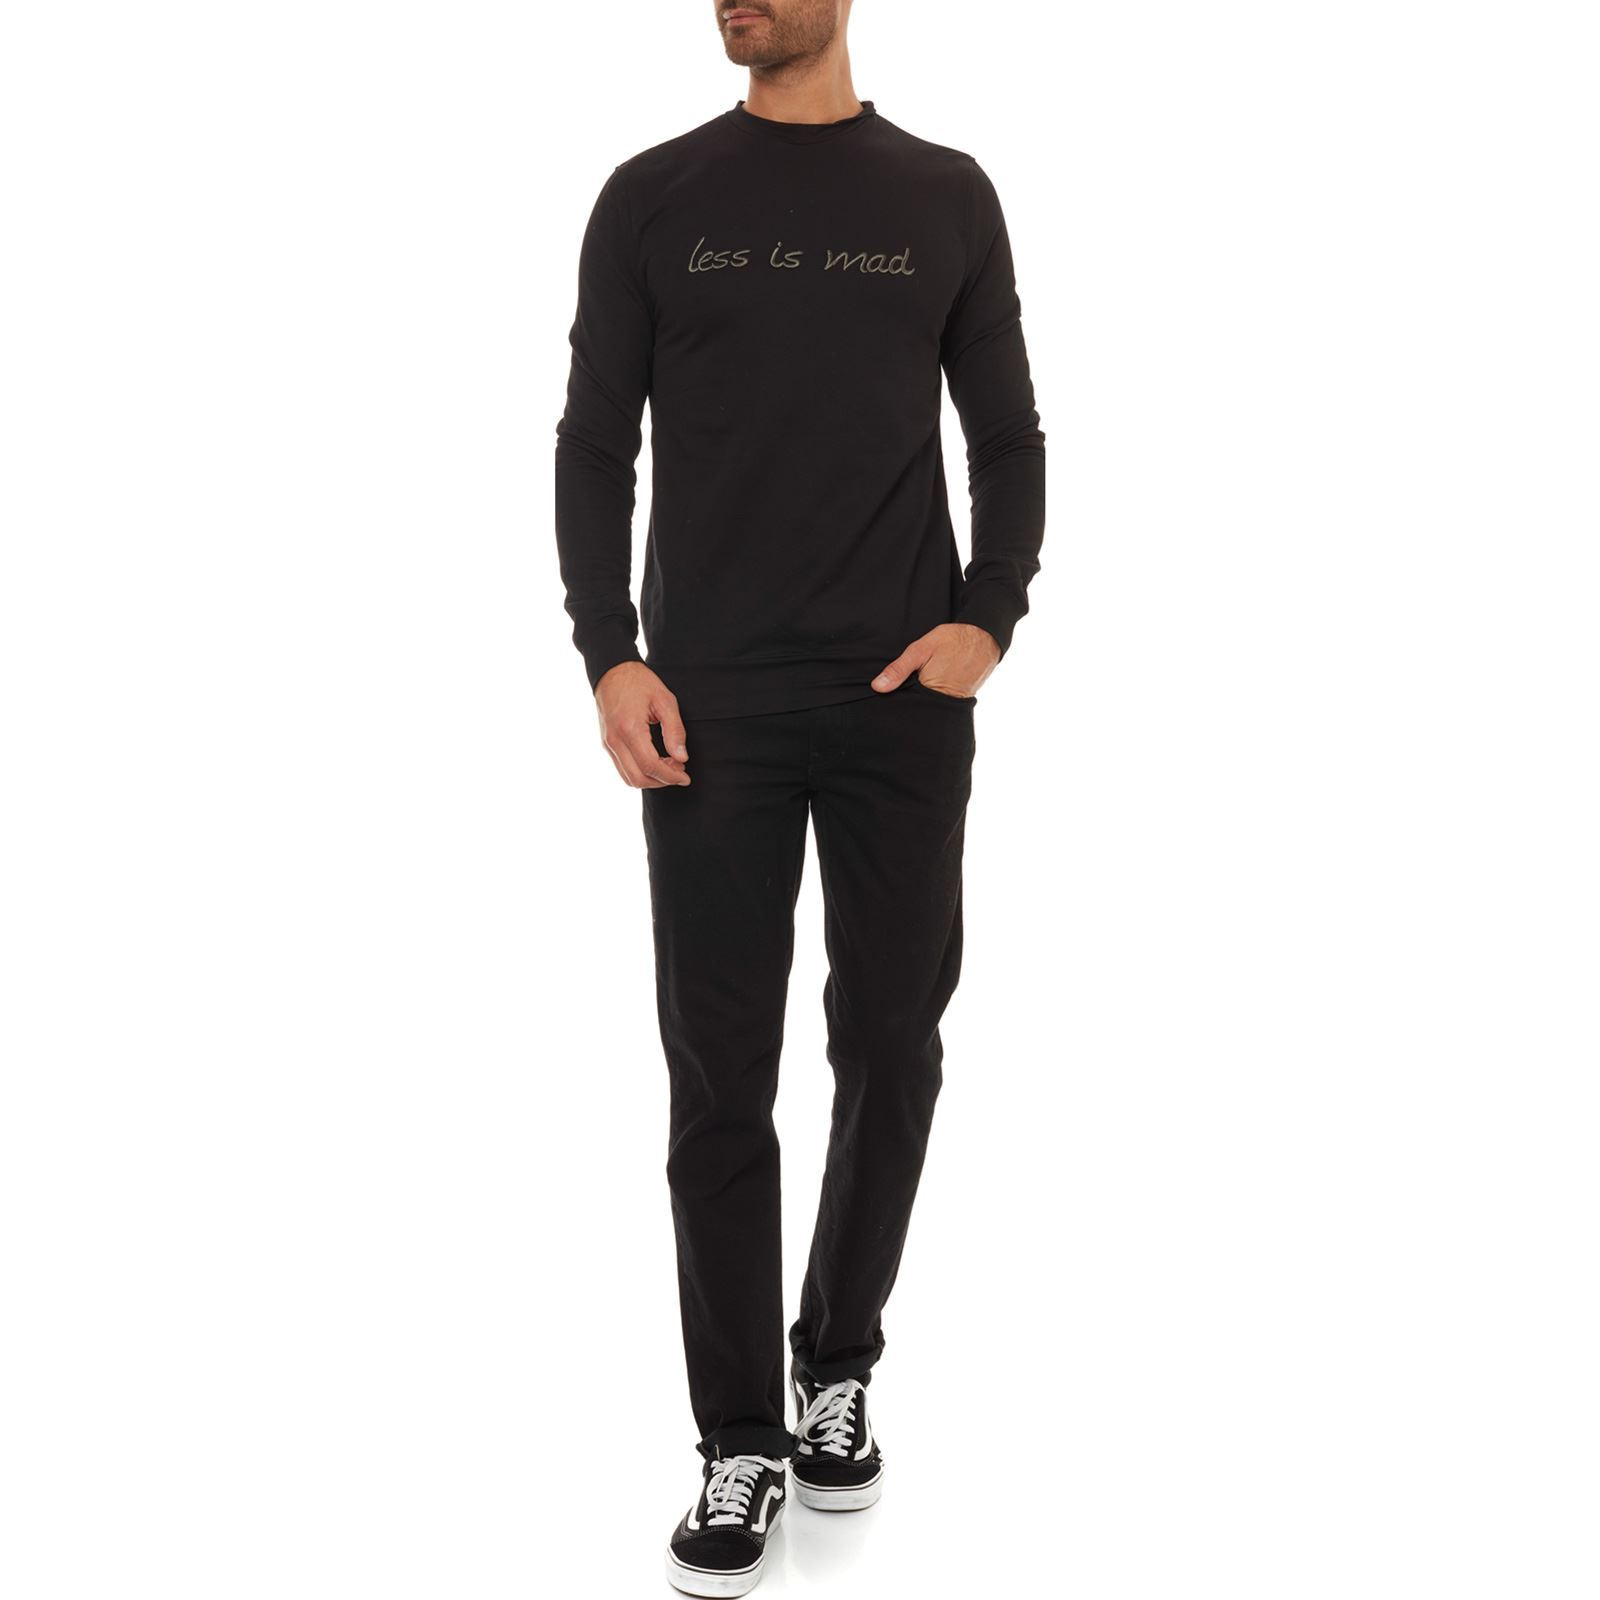 Mad Shirt Sweat Brandalley Maison Noir Z6dxZP 2a1e787f6ff